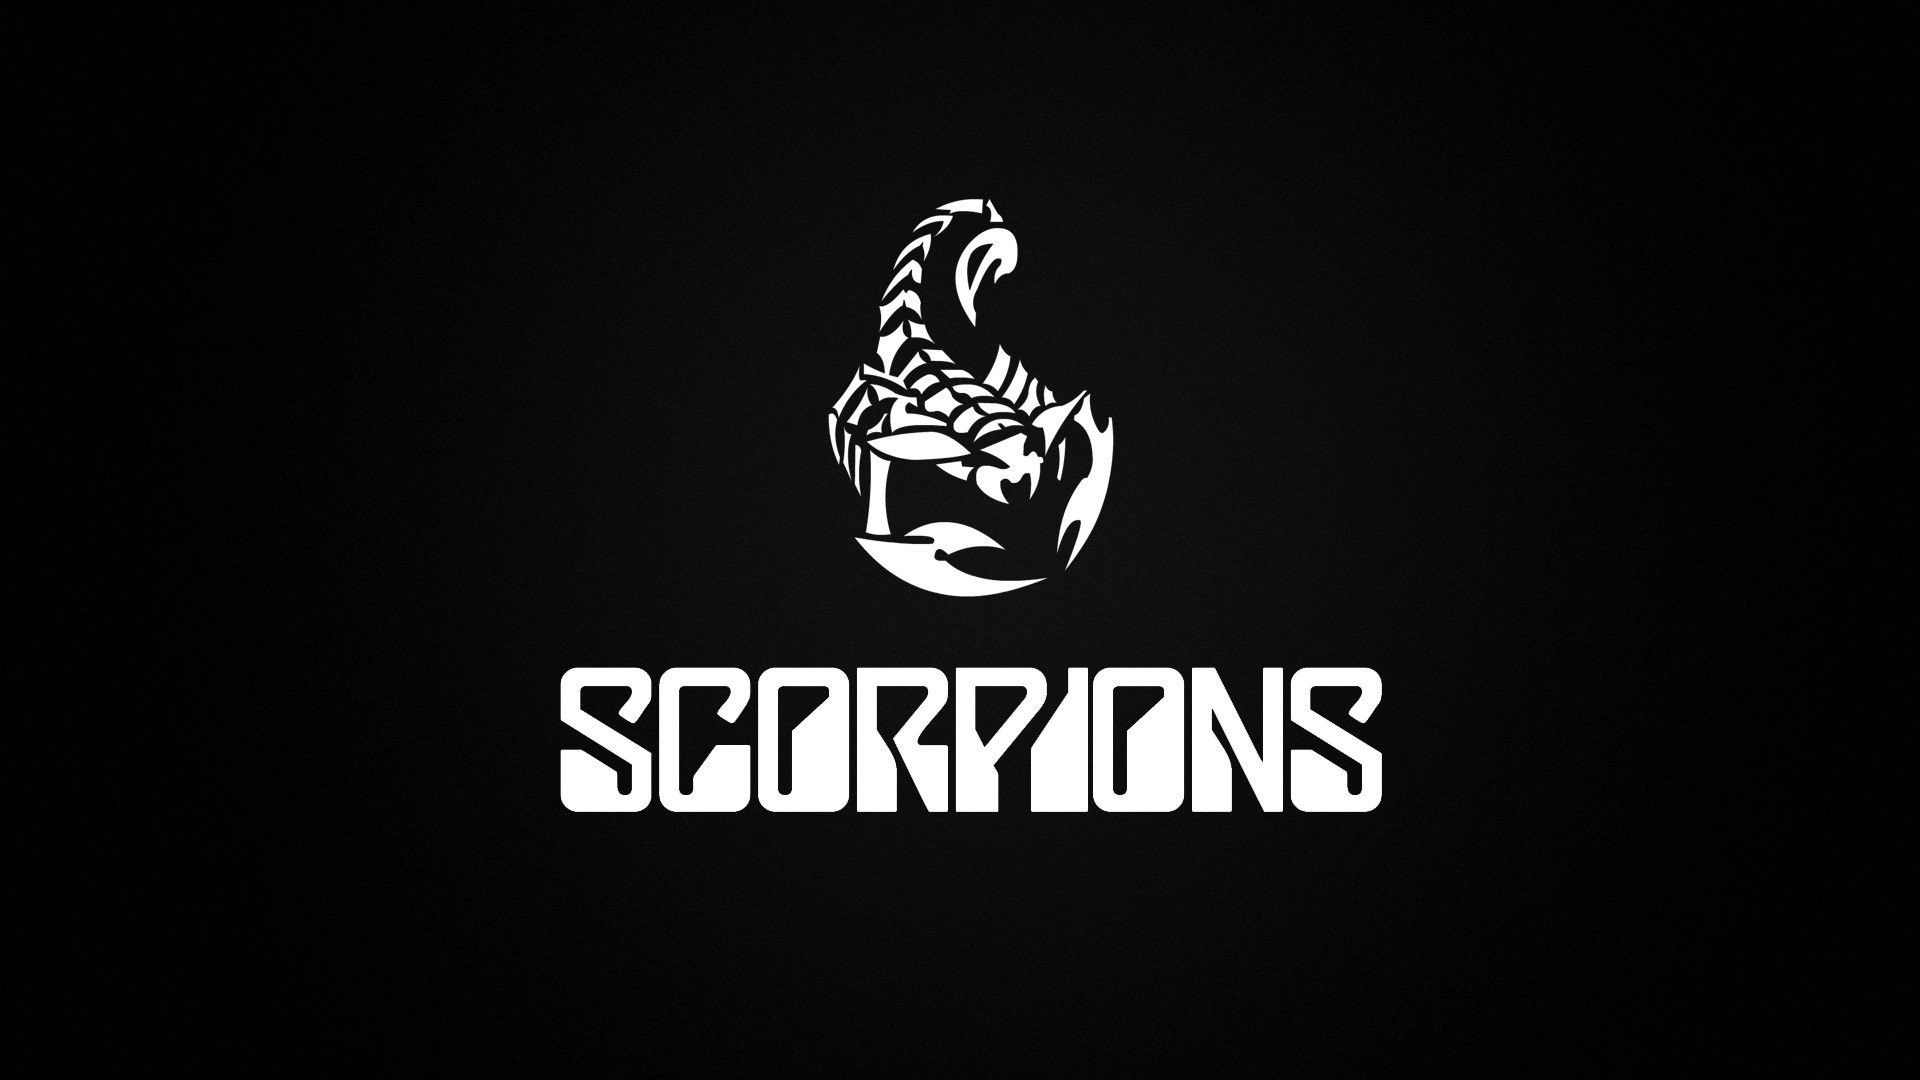 Scorpions Wallpapers Top Free Scorpions Backgrounds Wallpaperaccess